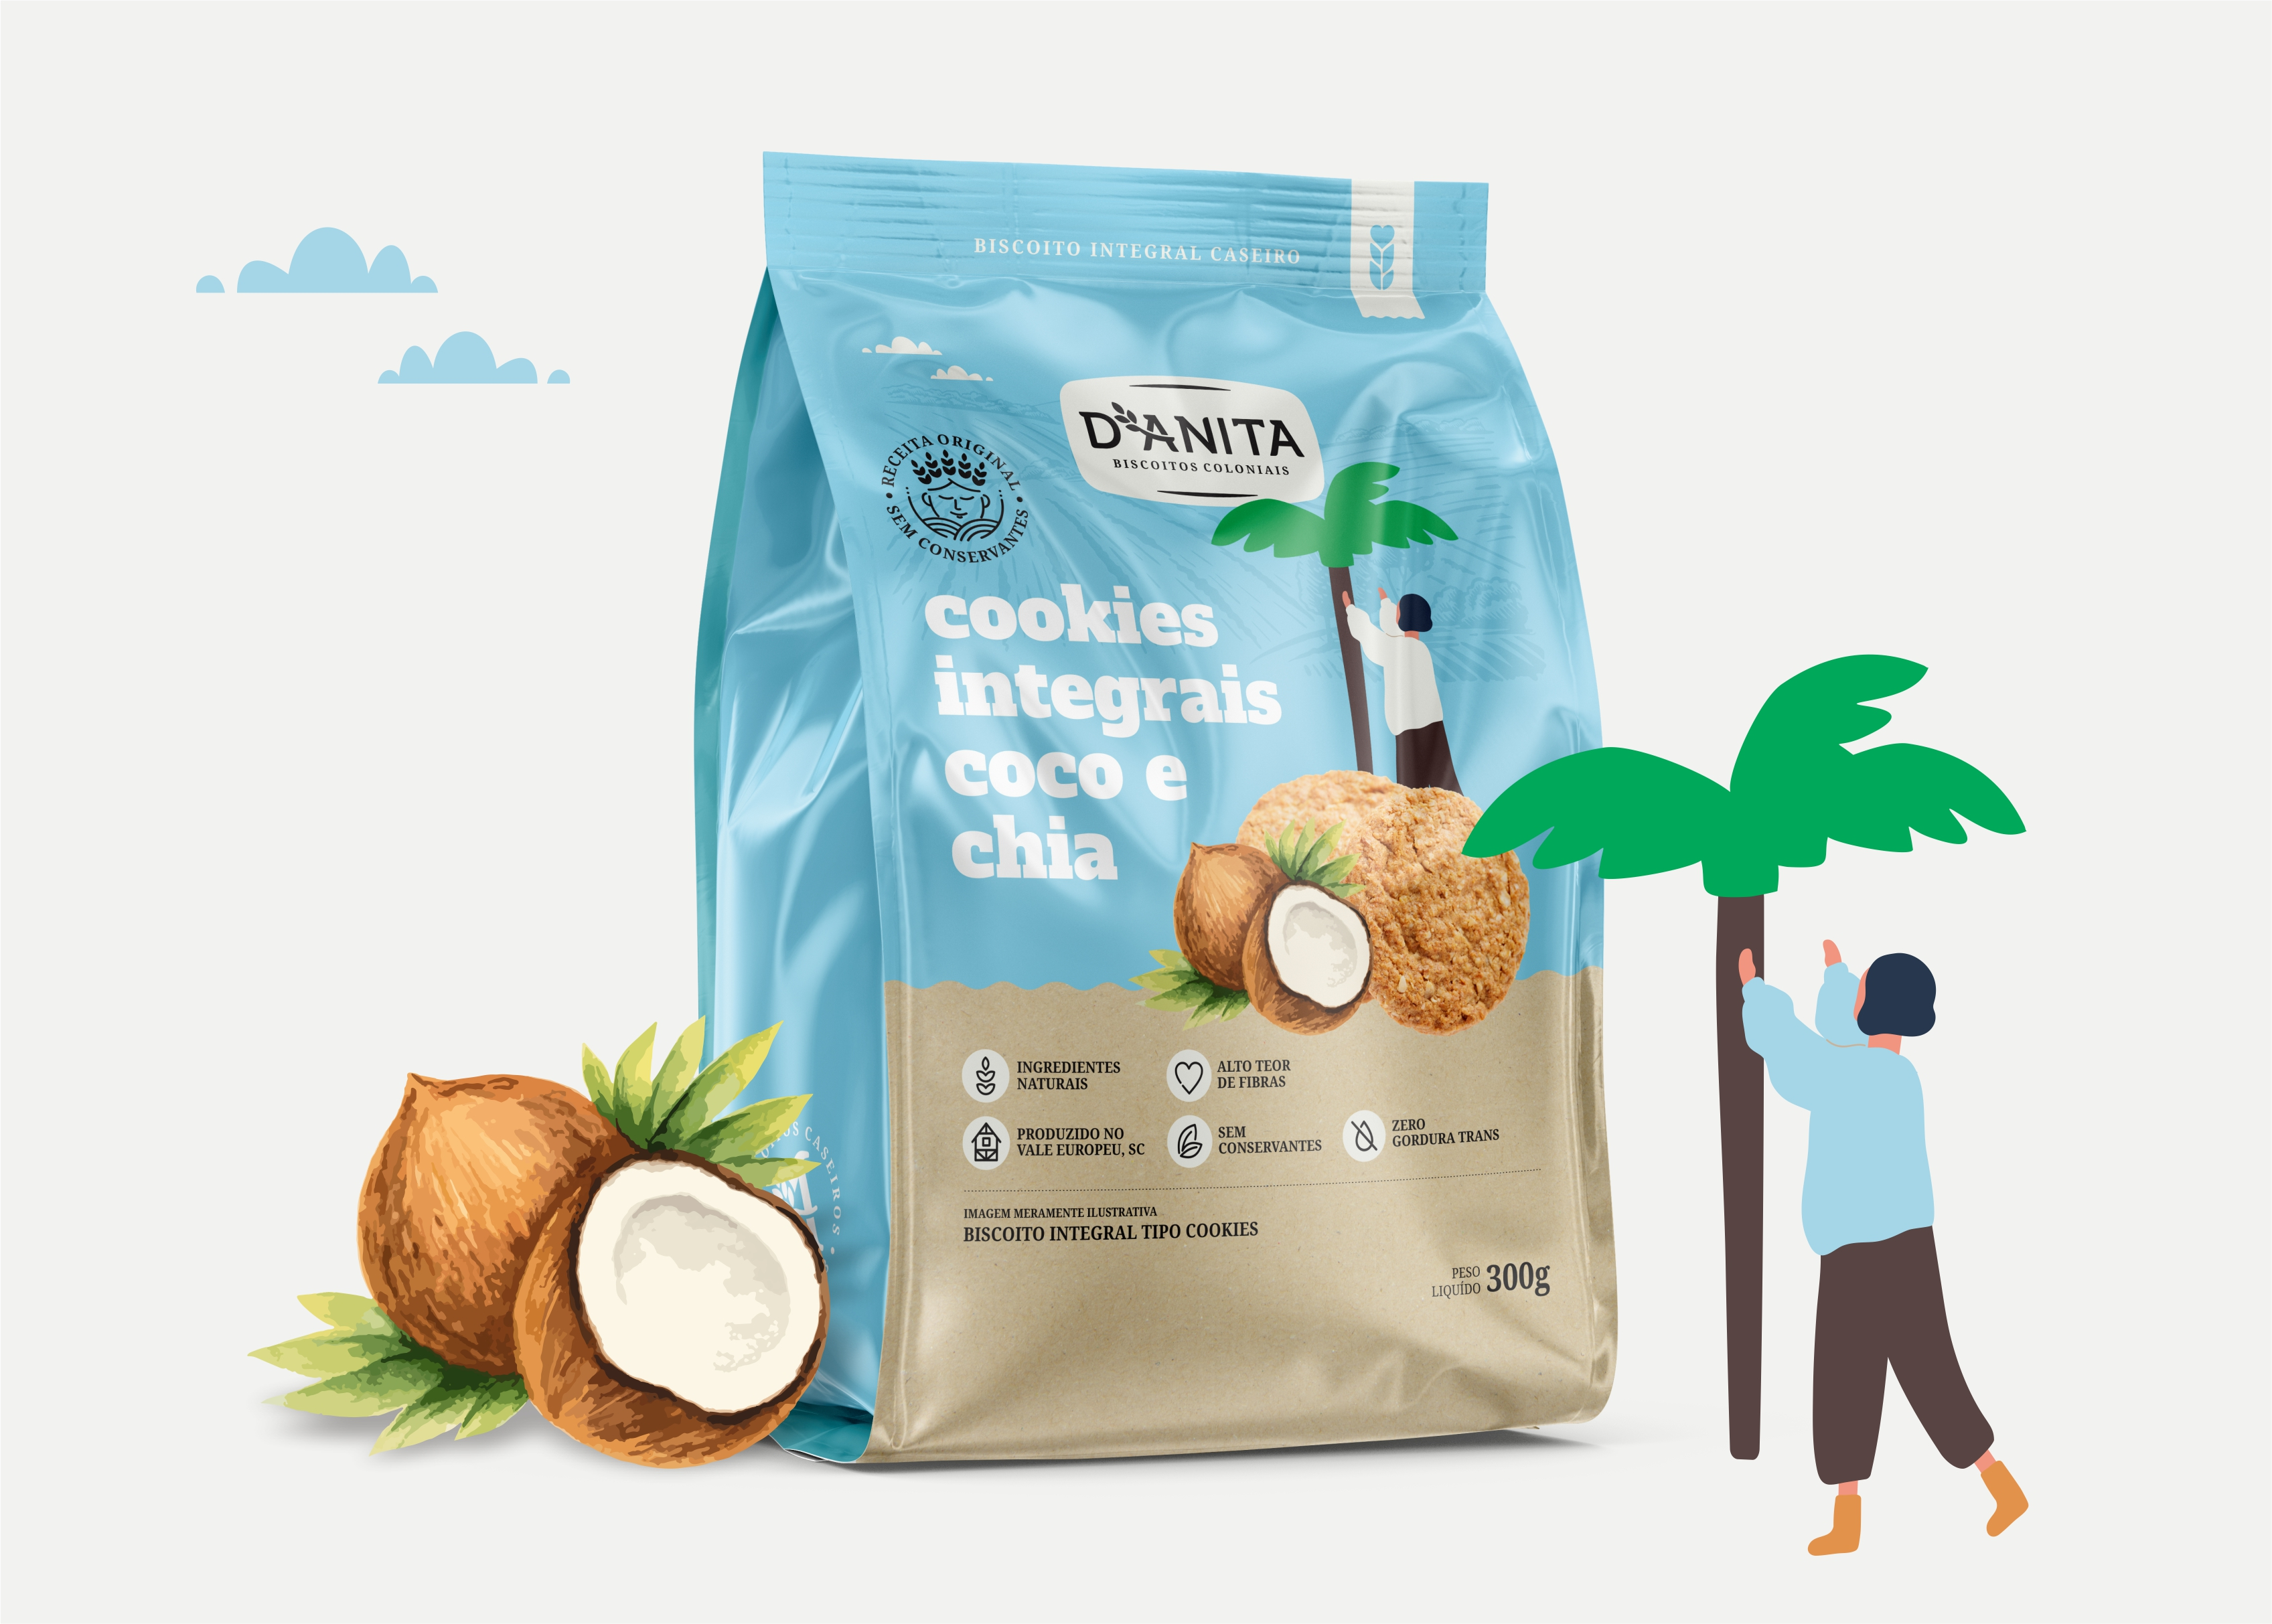 Santa Catarina Whole Cookies Brand and Packaging Design by RPD Design